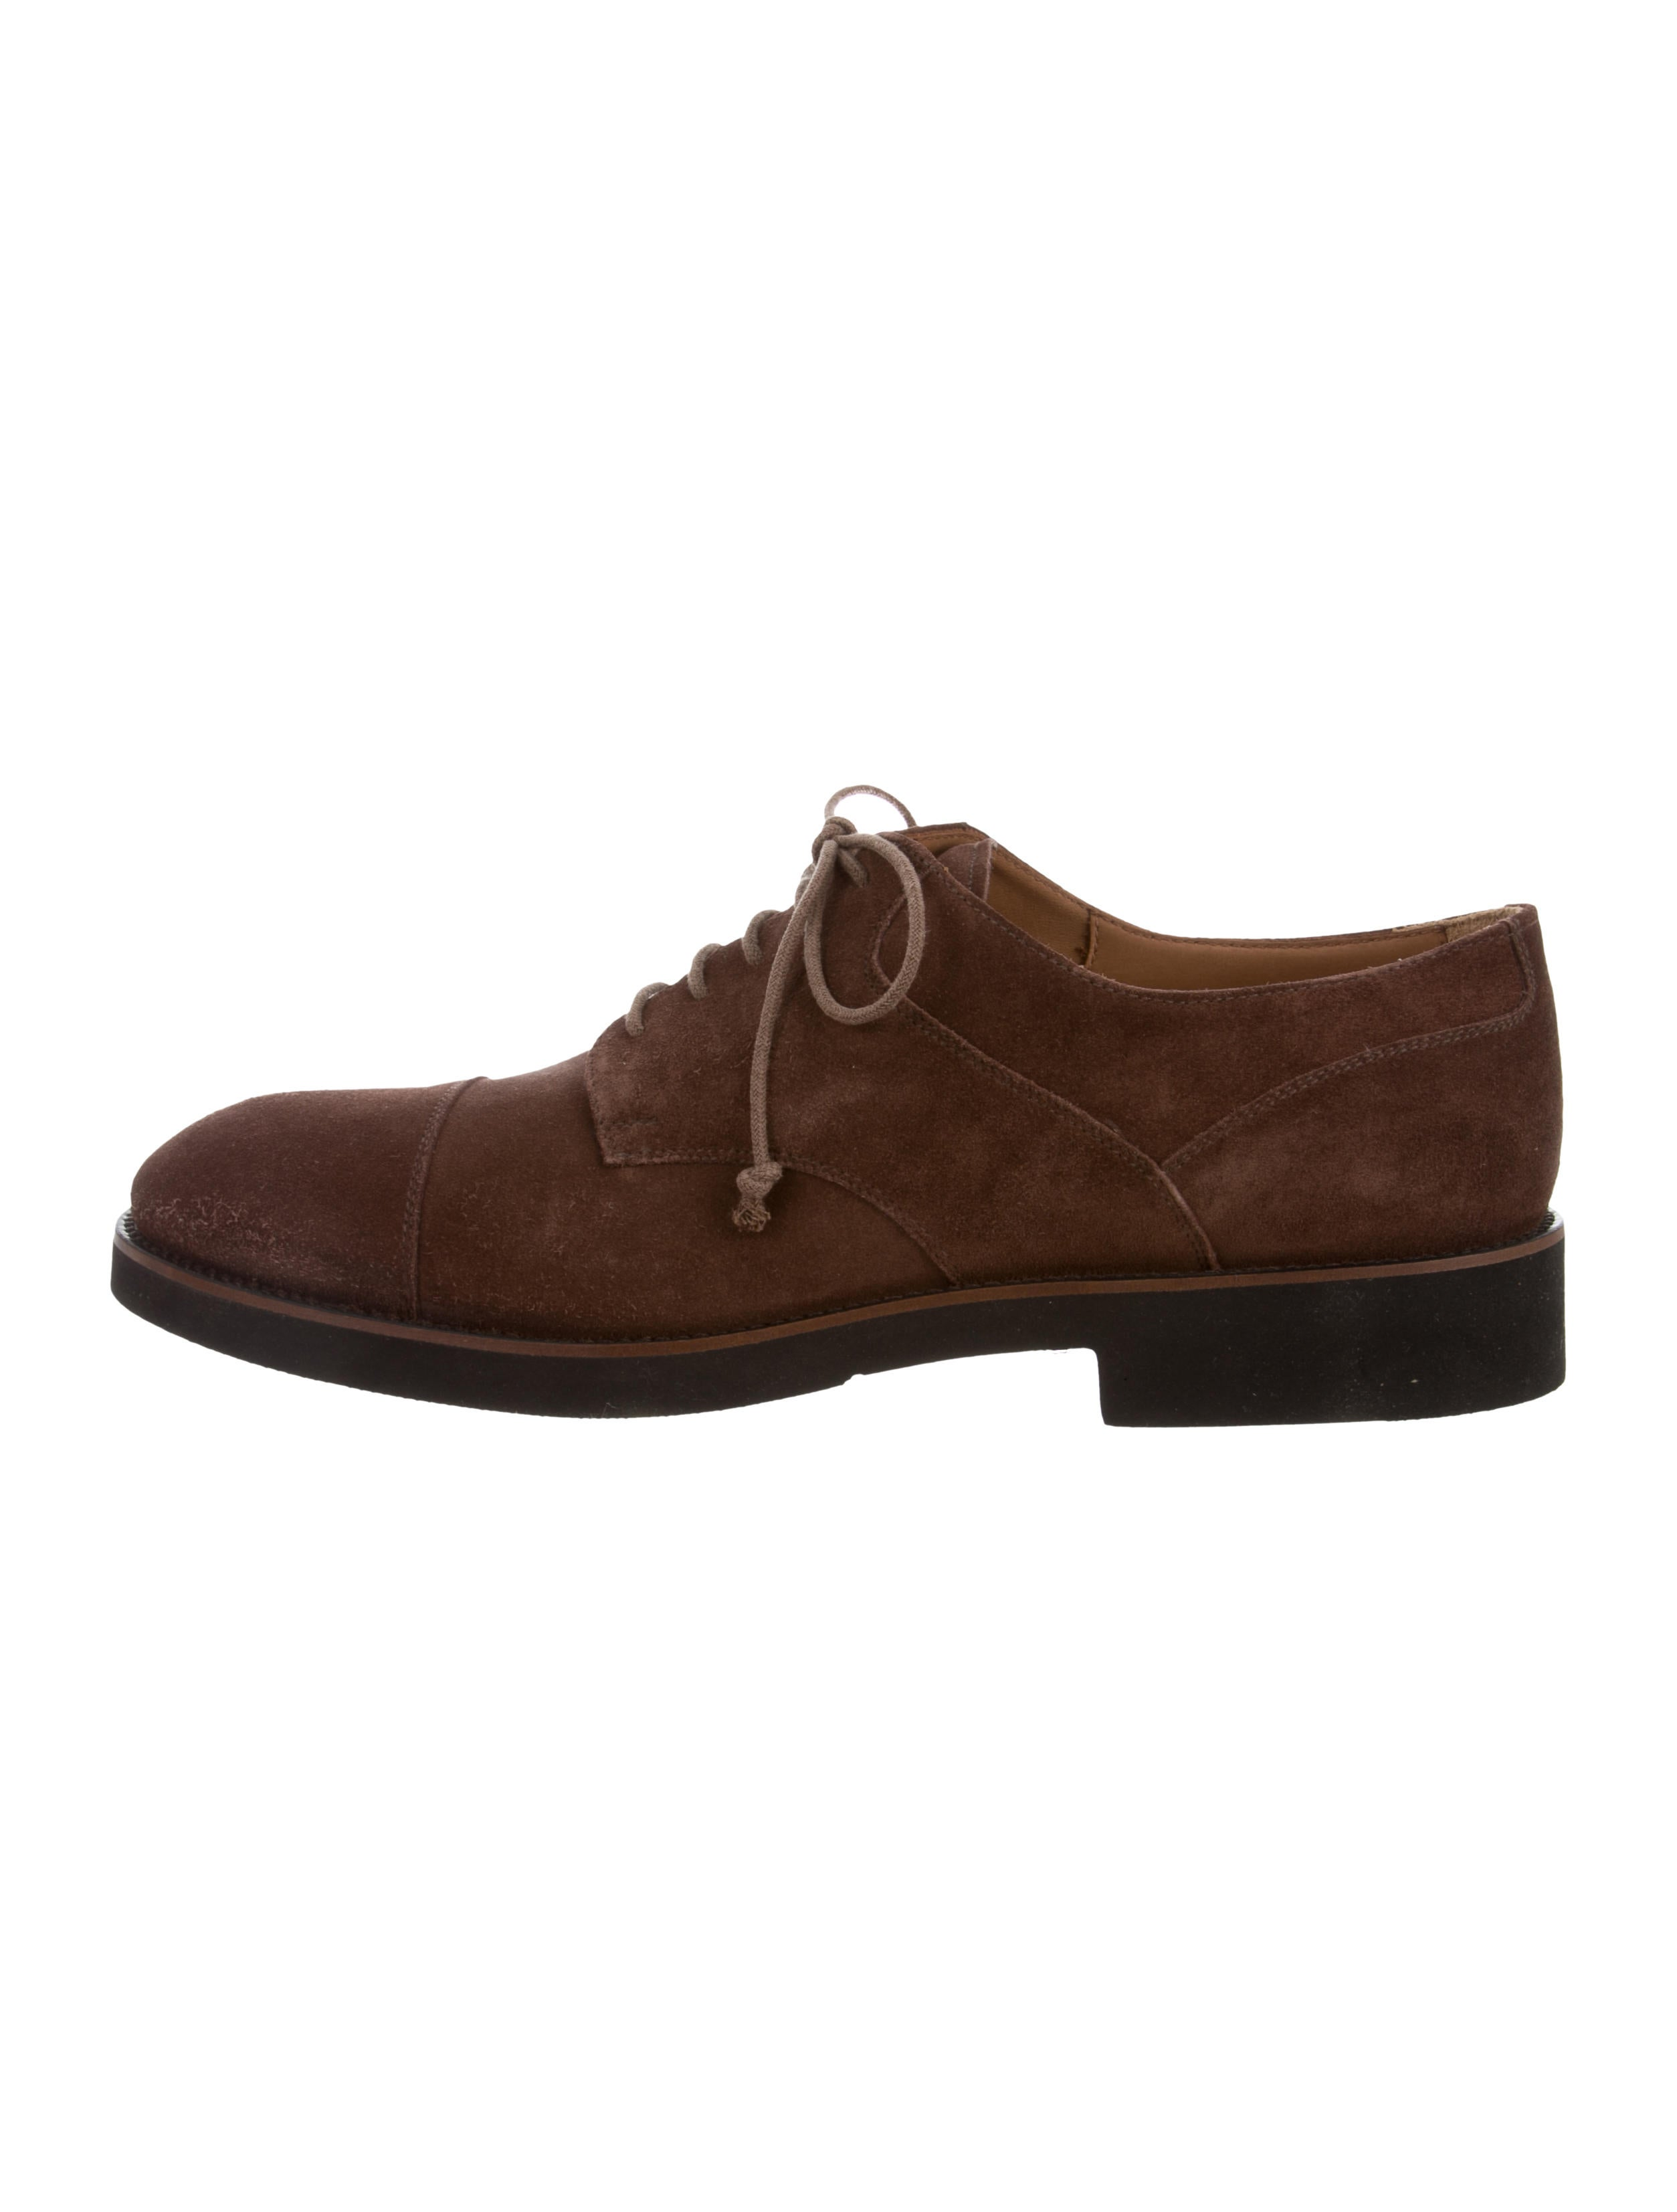 Suede Derby Shoes Doucal's lCbJuJwAl